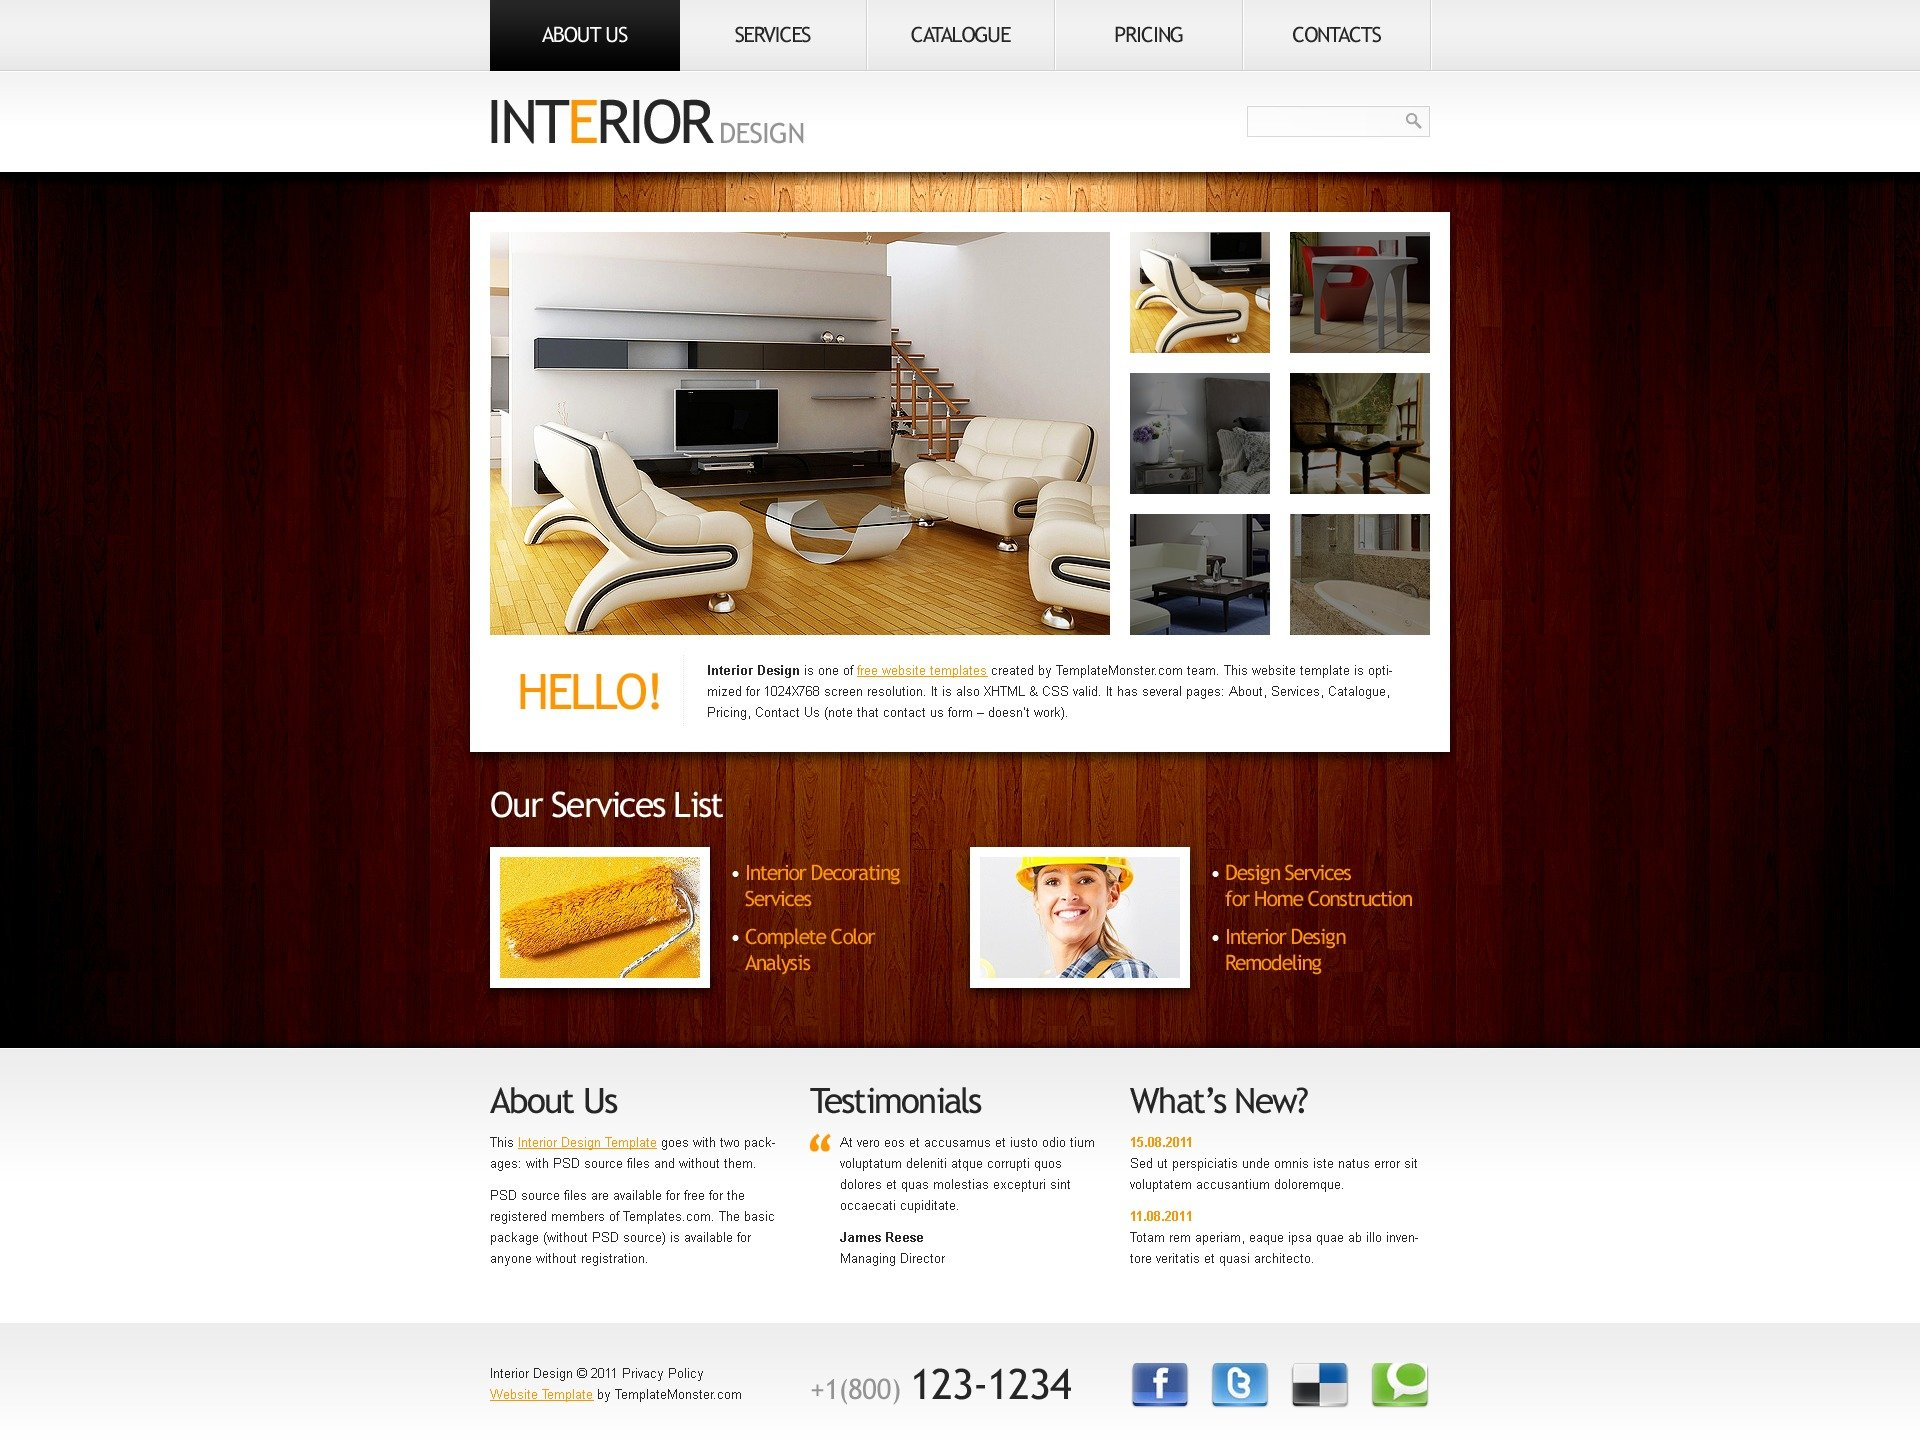 Free Website Template - Clean Style, Interior on home wallpaper websites, painting websites, genealogy websites, engineering websites, home blogs, home decorating websites, furniture websites, cooking websites, writing websites, home designing websites, research websites, poetry websites, apartment websites, microsoft websites, home childcare websites, home designs 2014, advertising websites, background designs for websites, printing websites, architect websites,